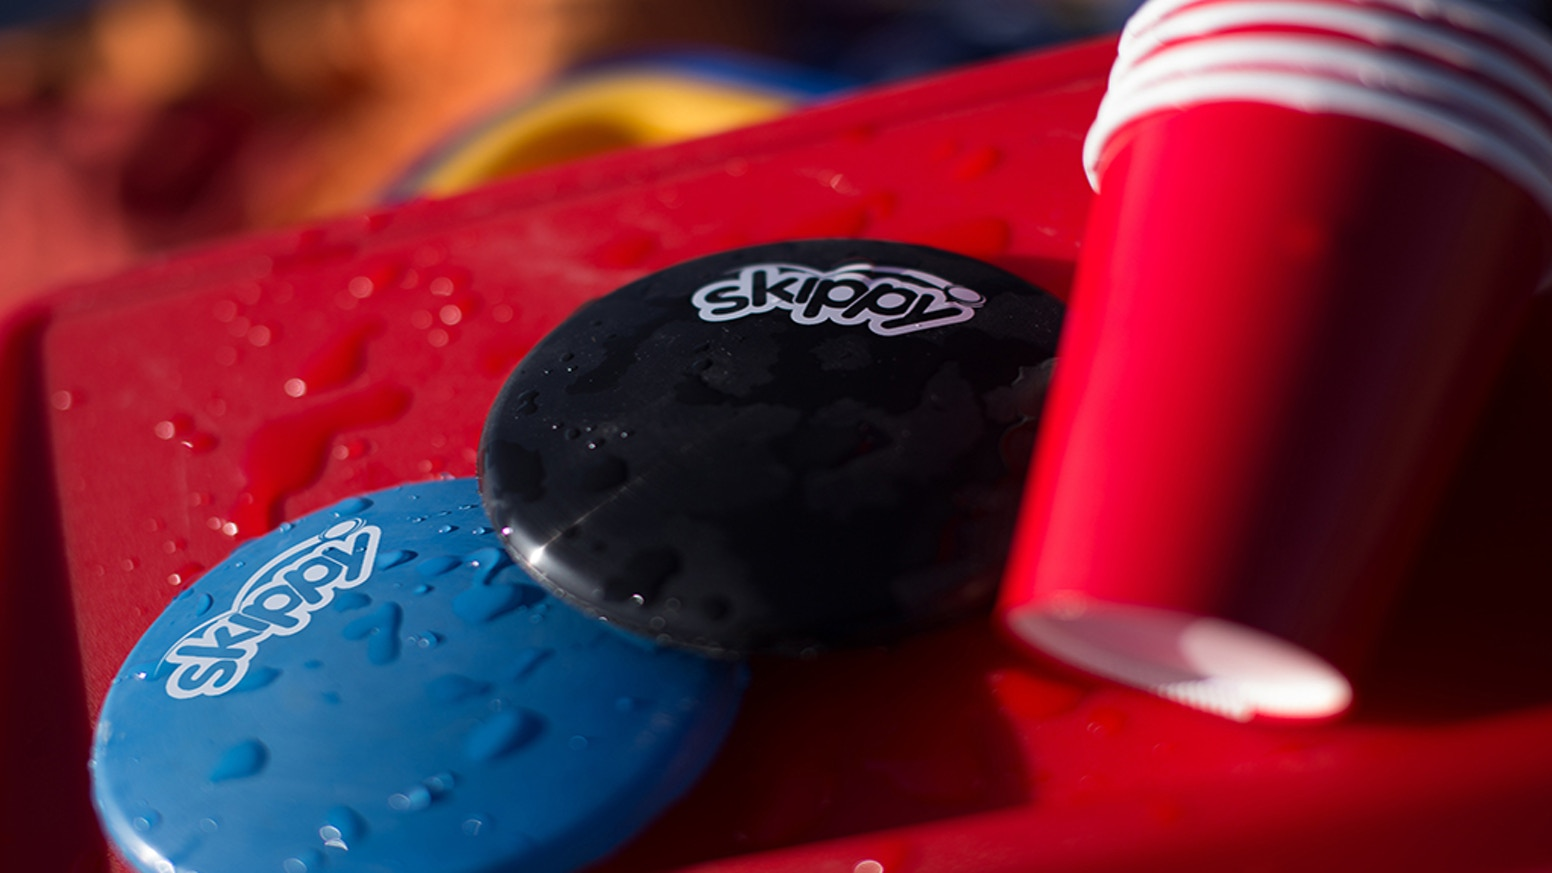 The idea emerged from skipping flat rocks on water's surface. It's fast, it's fun and it can be yours here.